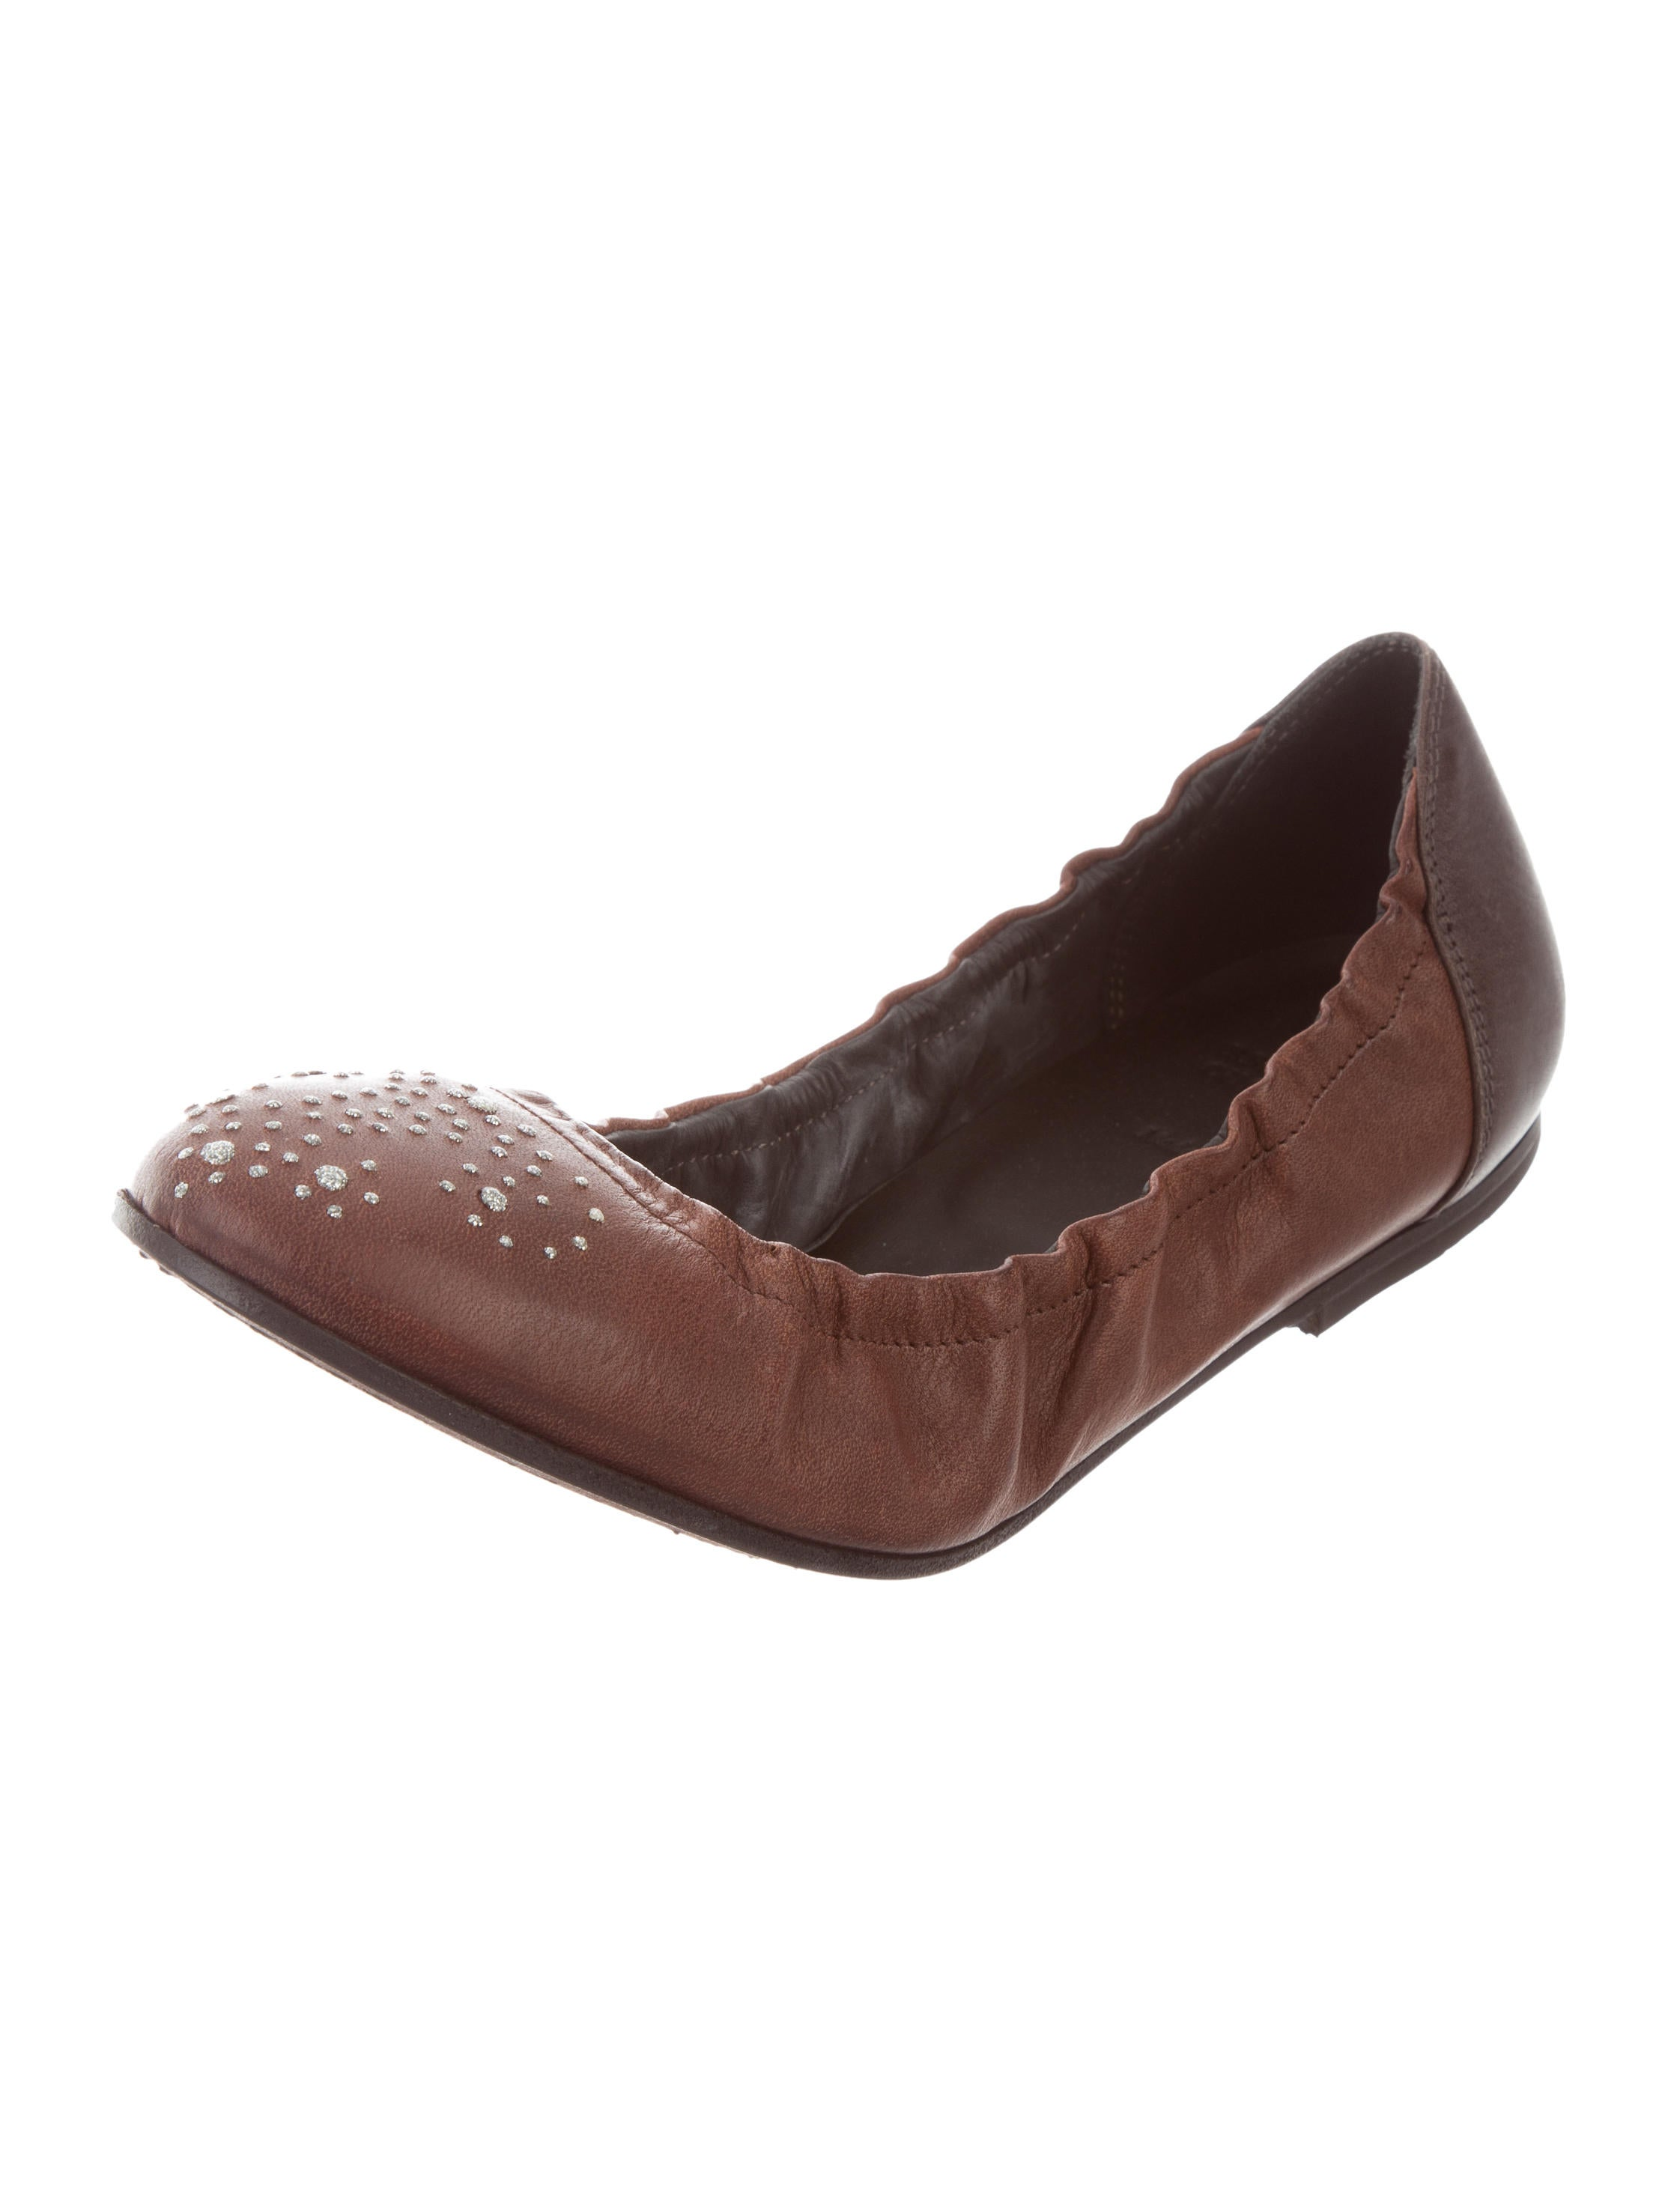 Brunello Cucinelli Leather Ballet Flats w/ Tags buy cheap for nice zNsCv